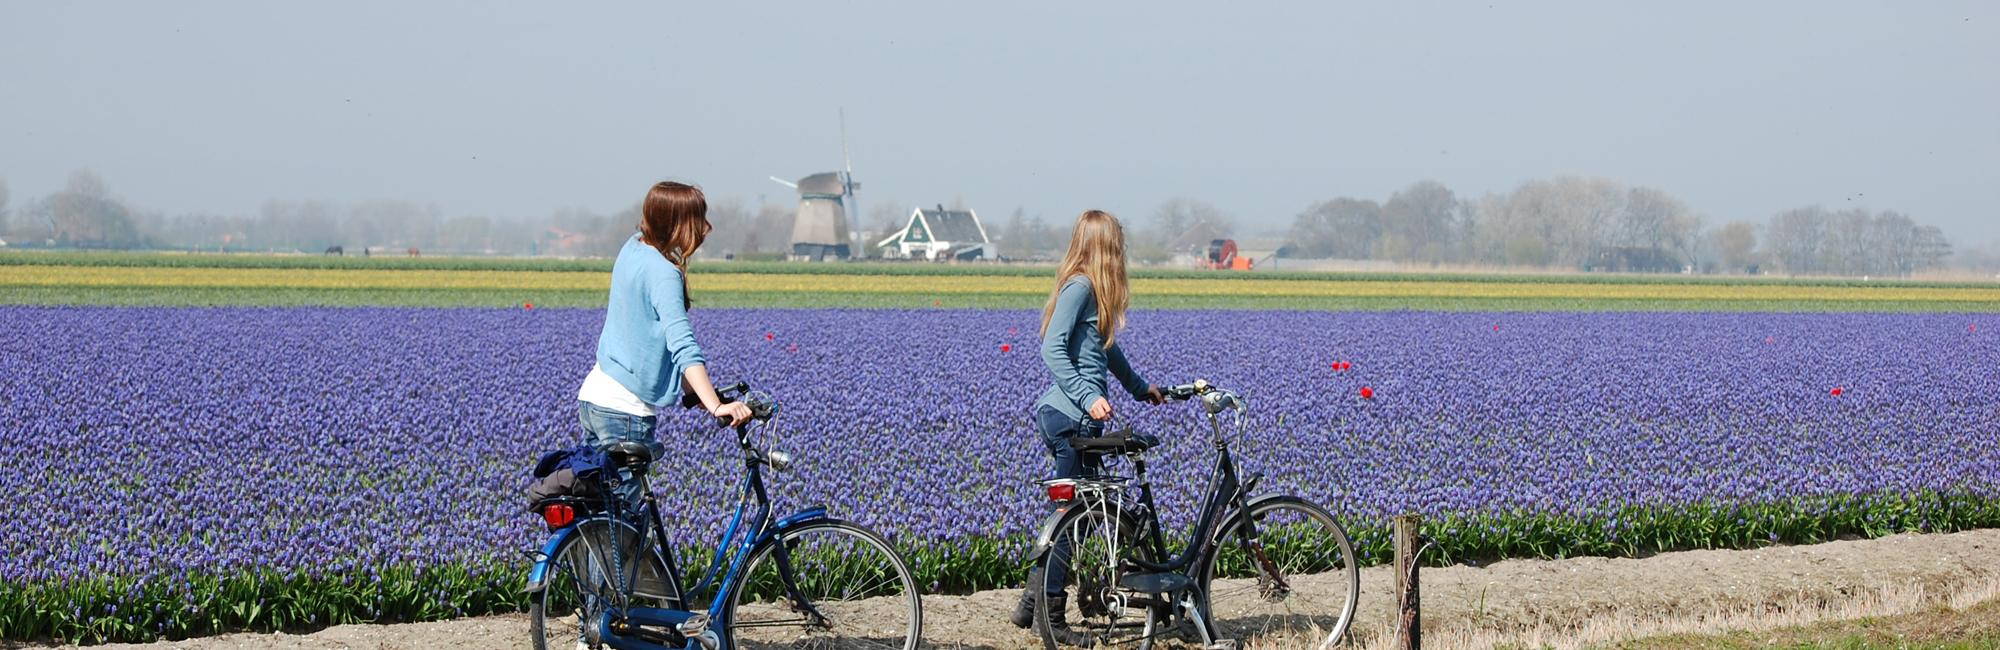 Dutch Bike Tours Radreisen IJsselmeer und V.O.C. Tour